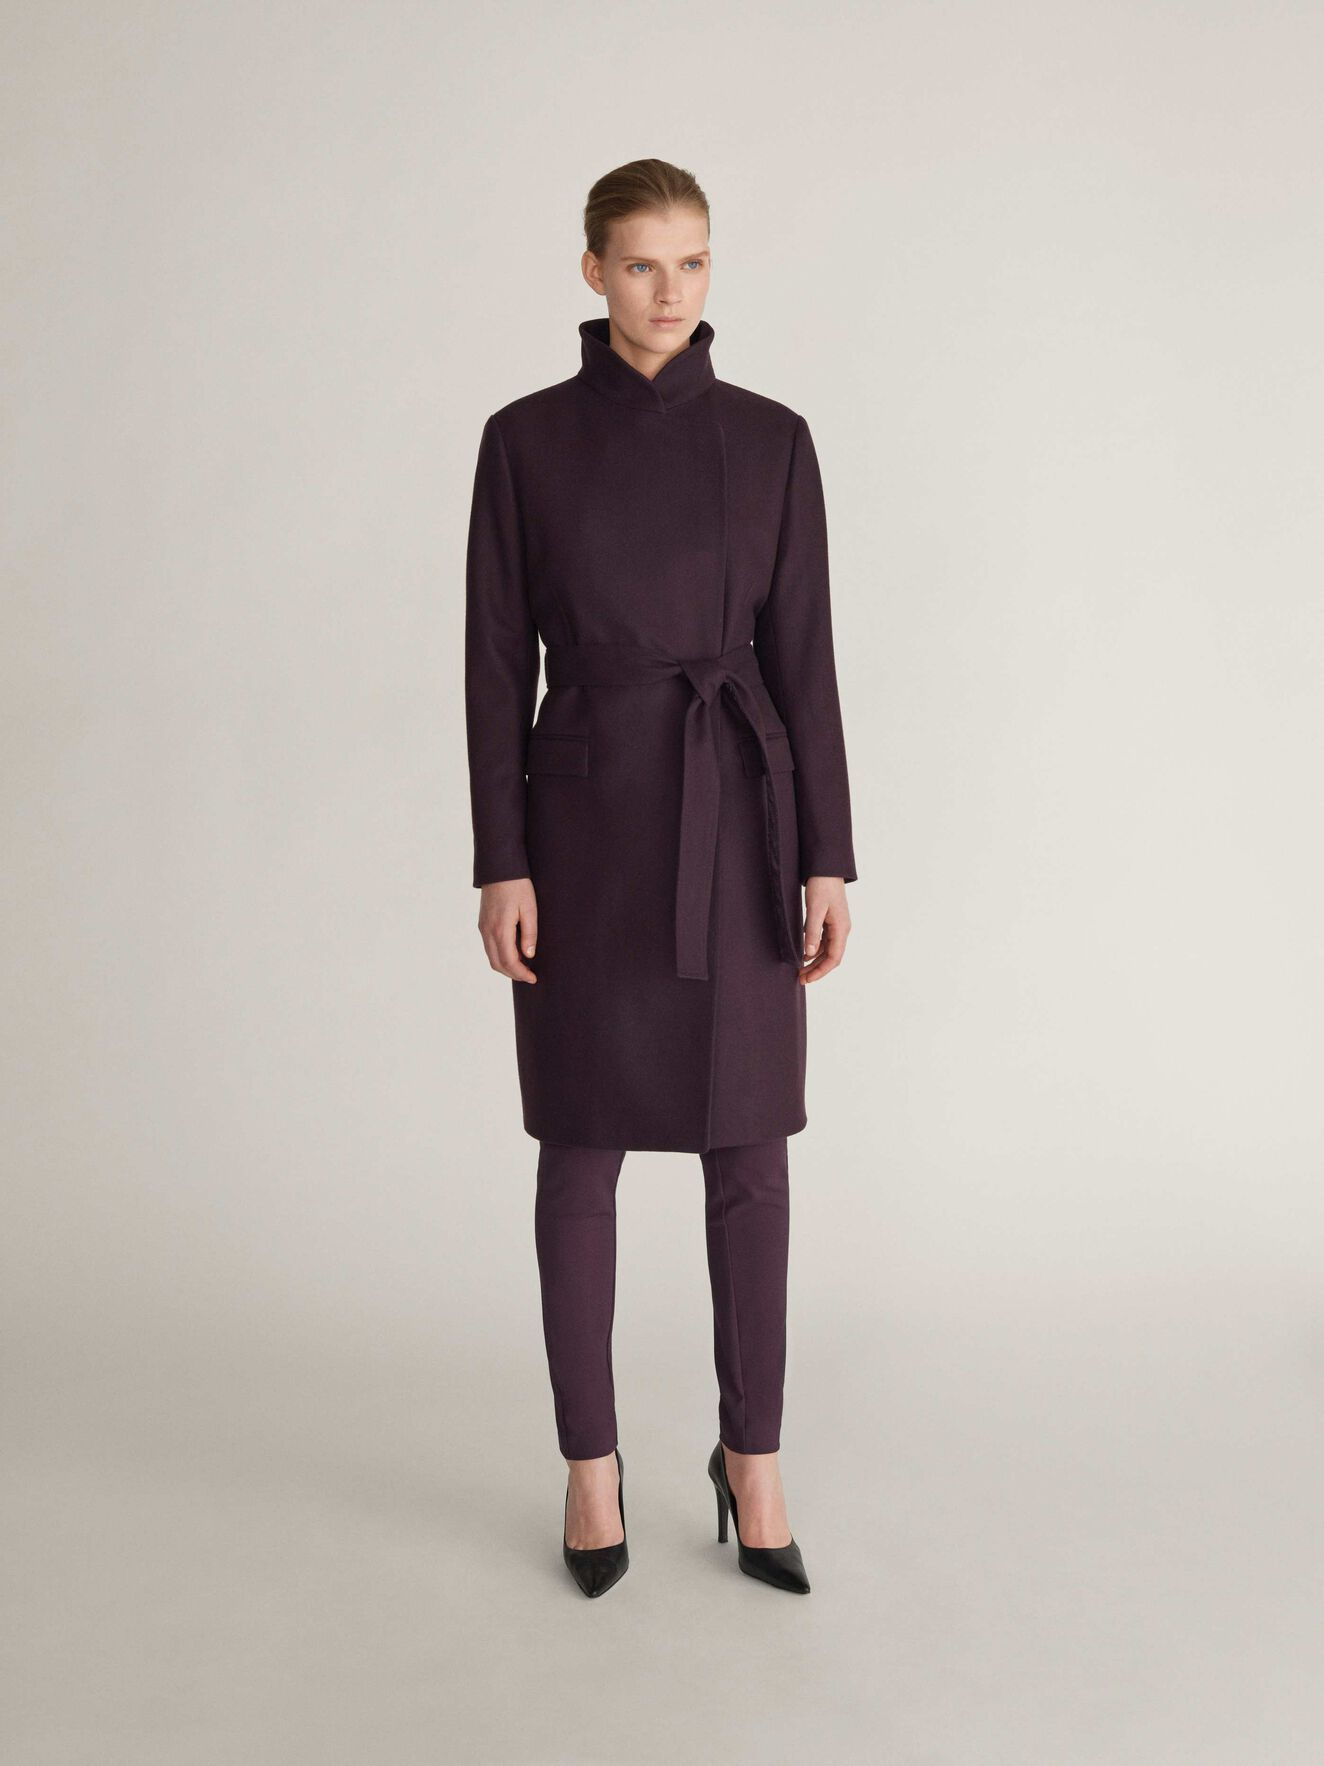 Knopp Coat in Juicy Plum from Tiger of Sweden